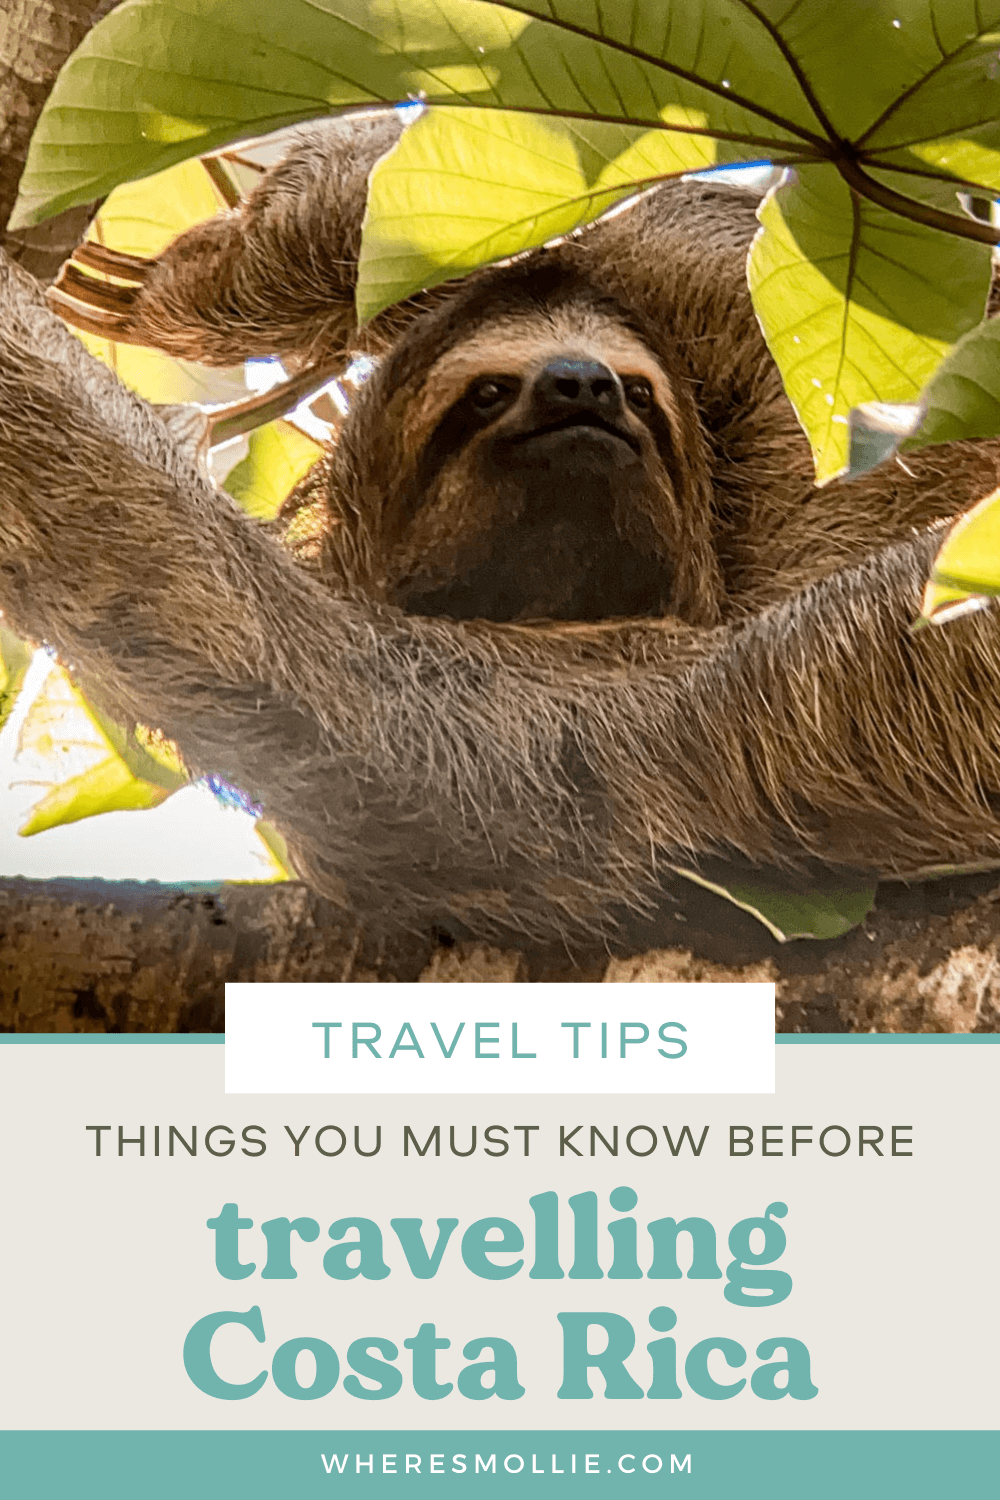 Top tips for travelling in Costa Rica